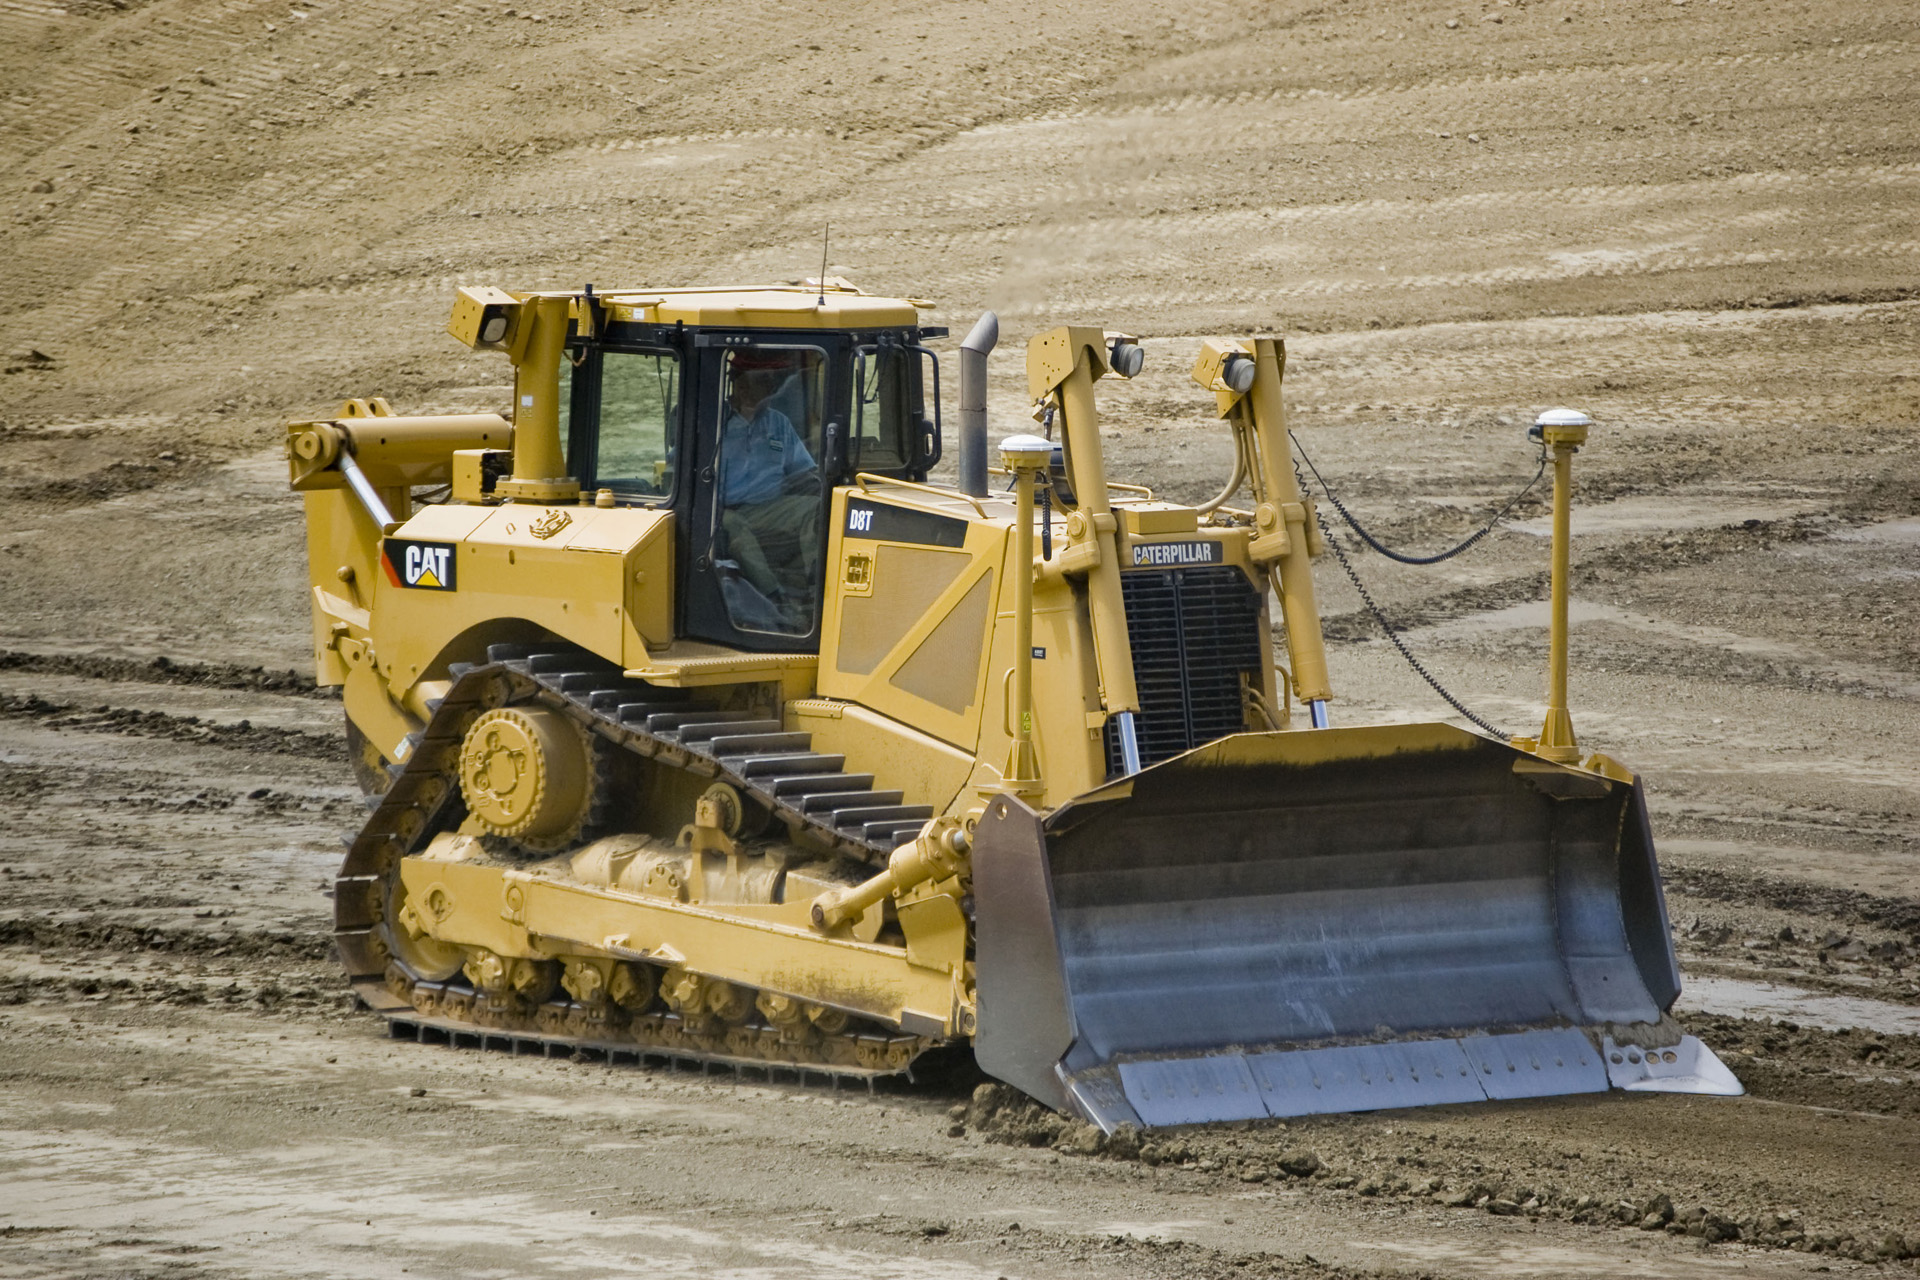 Caterpillar d8 Photo and Video Review  Comments